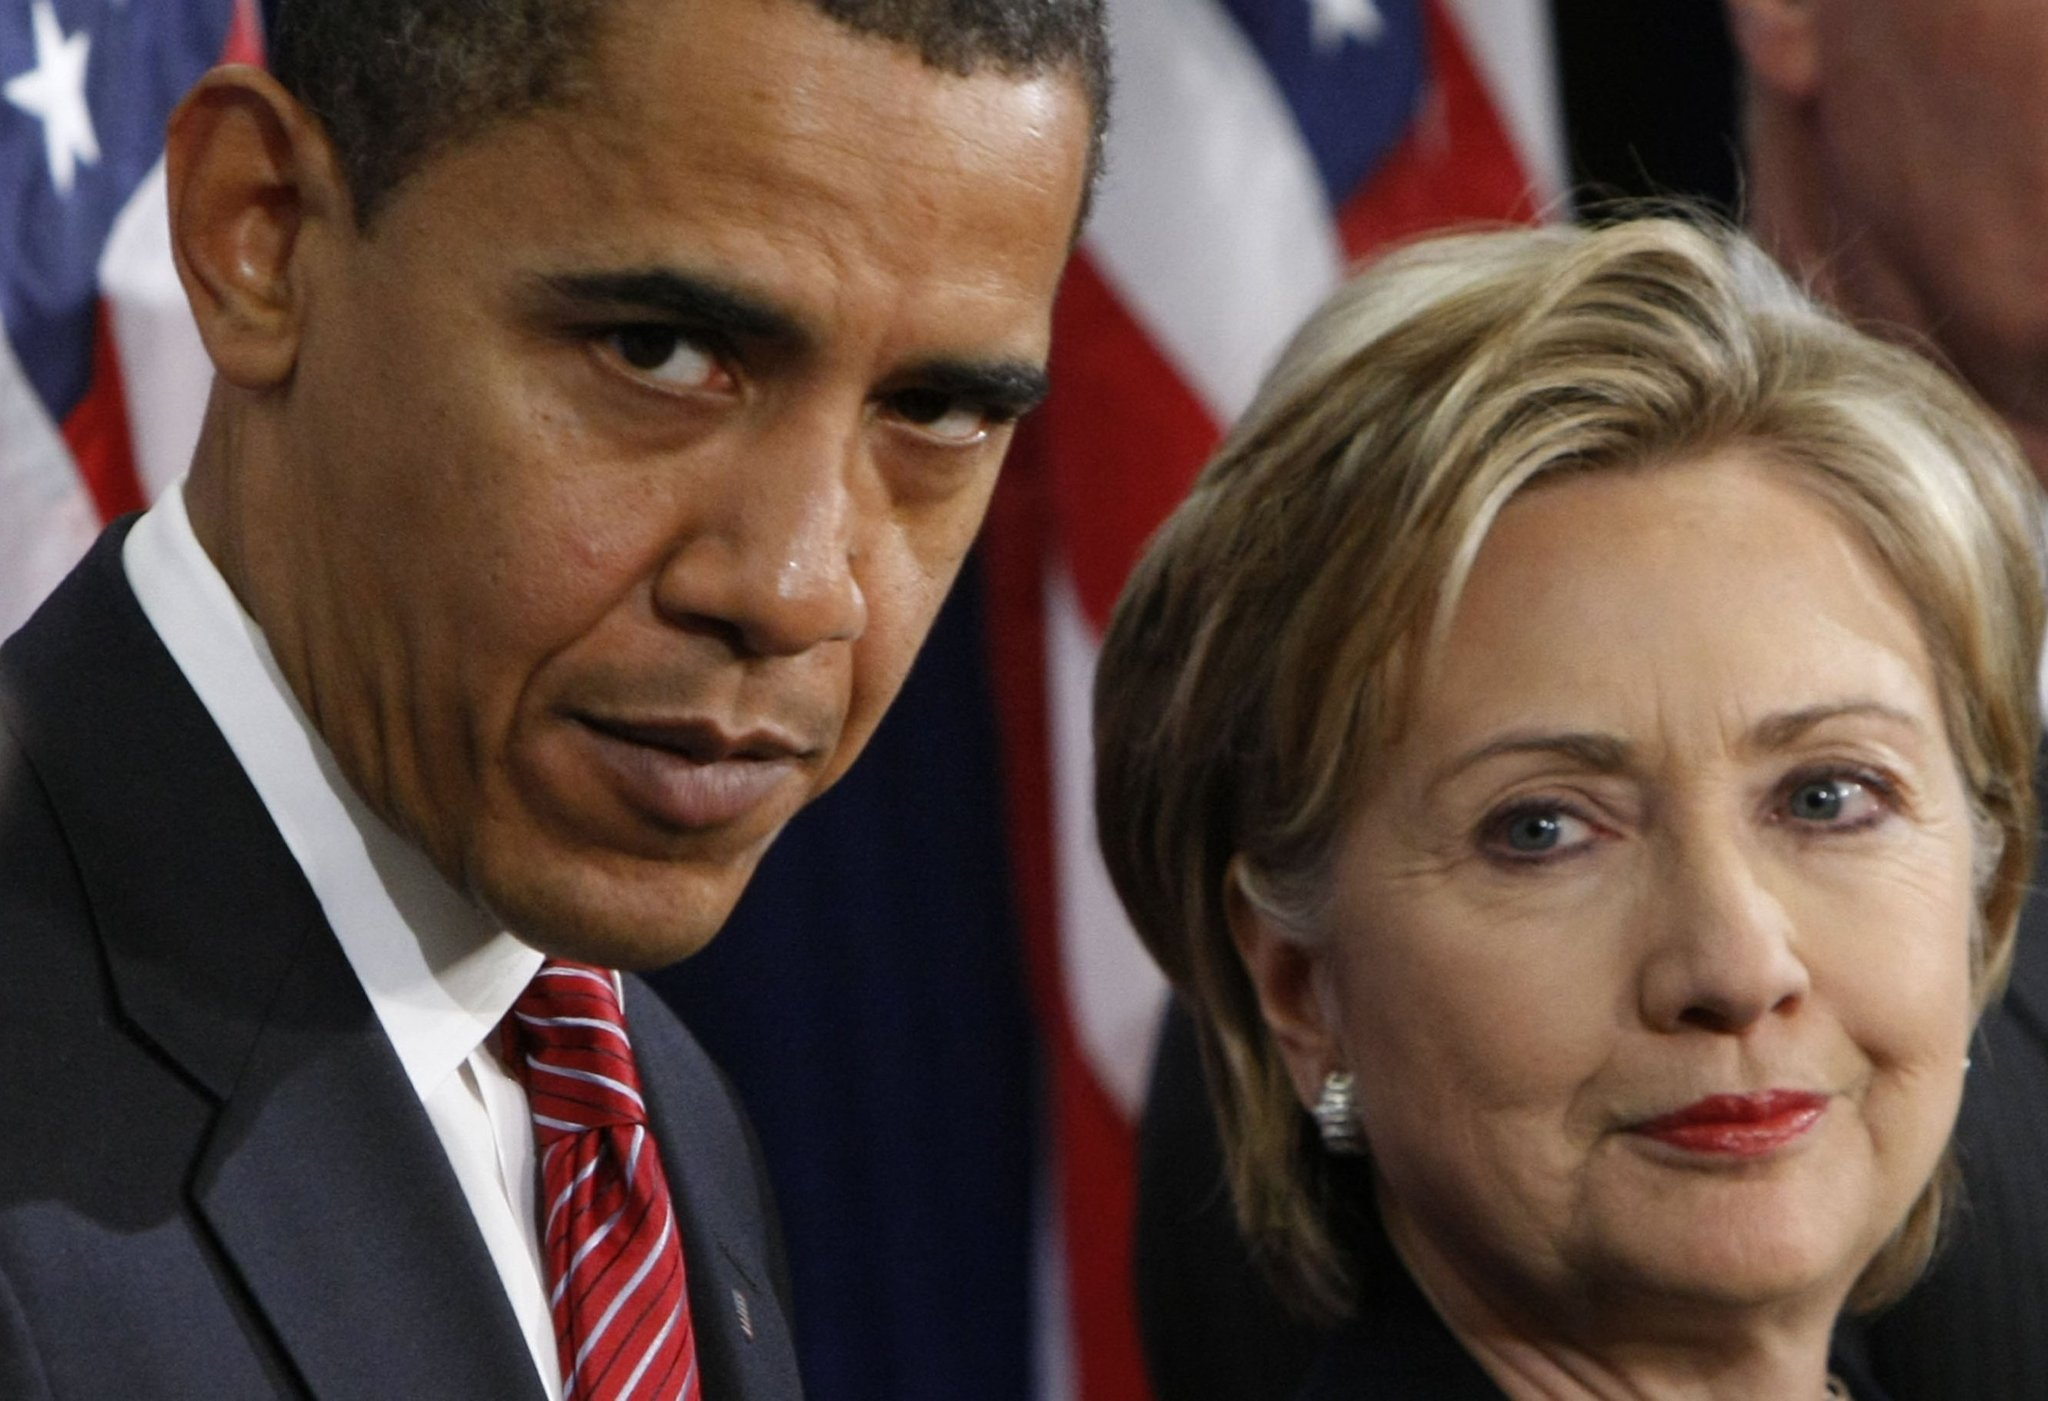 Obama Urged Biden Not to Run Against Hillary Clinton in 2016